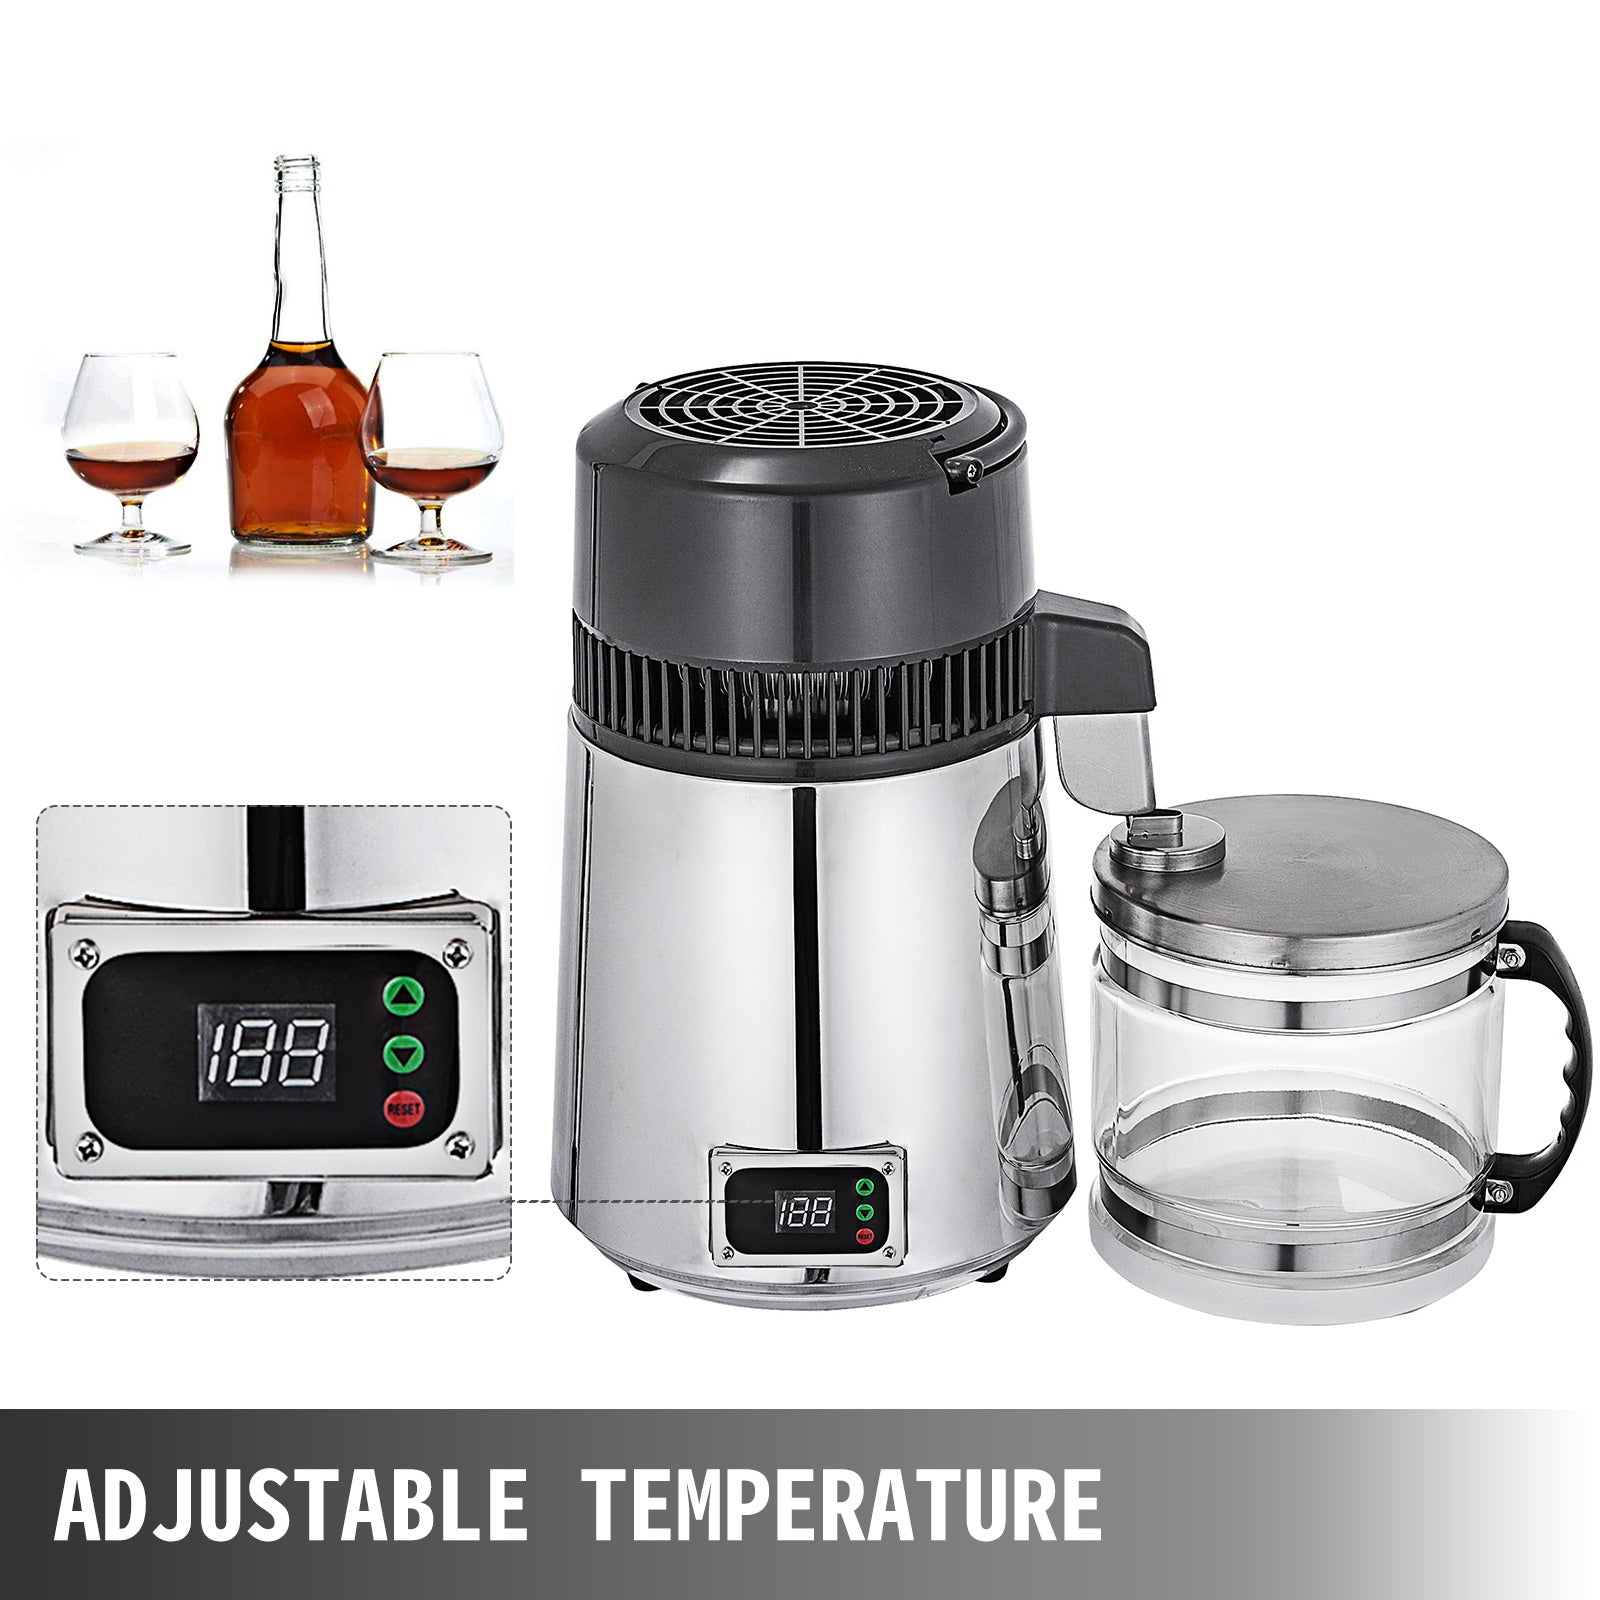 Water Distiller Purifier Temp Control 4l Water Distiller Machine Silver